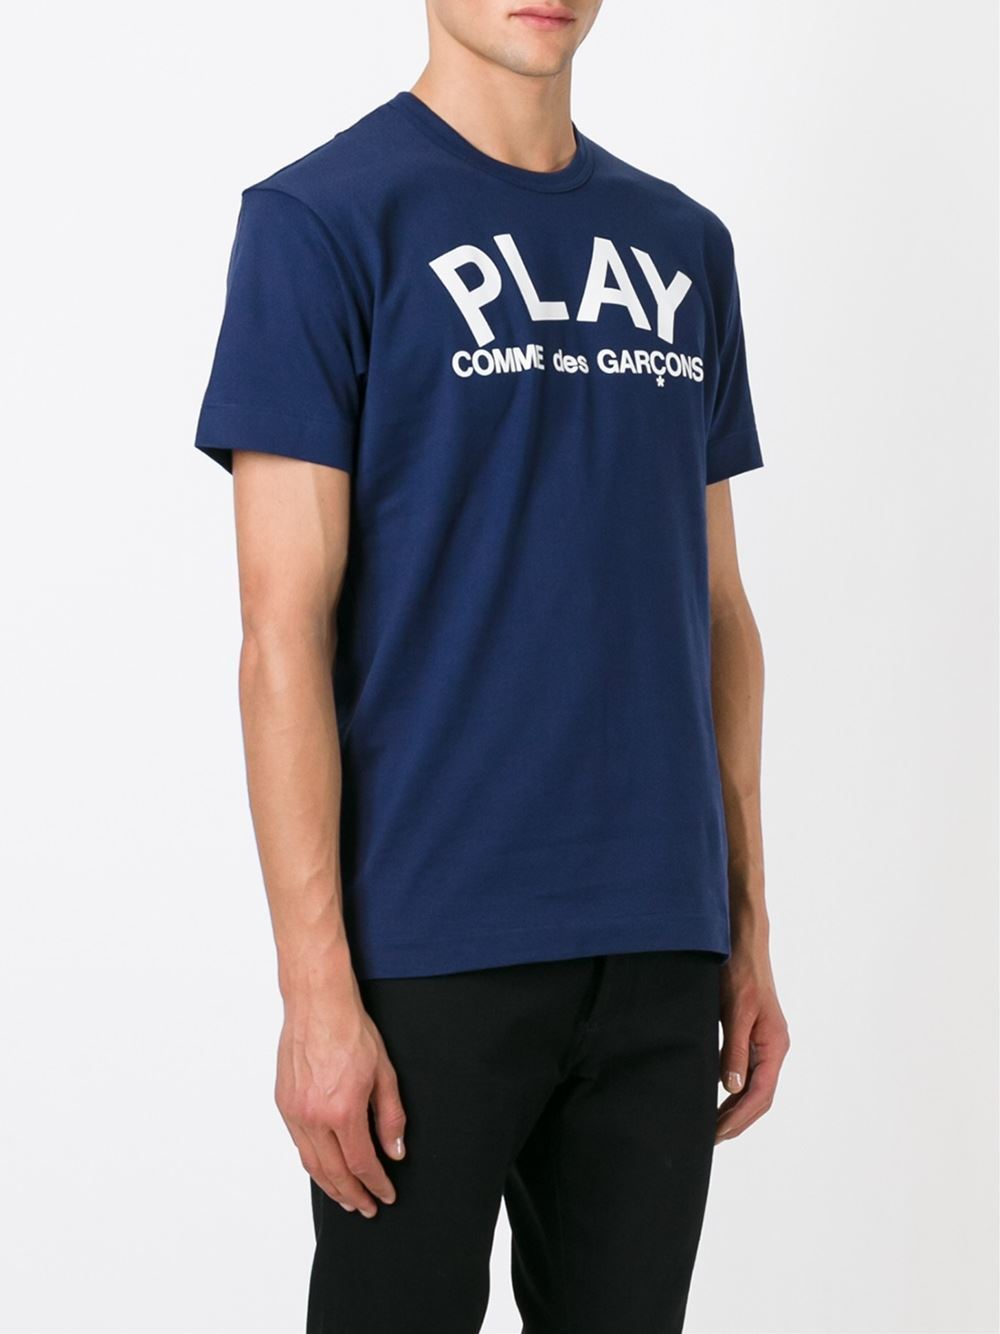 ● COMME des GARCONS PLAY ● Play ロゴ Tシャツ /ネイビーx白